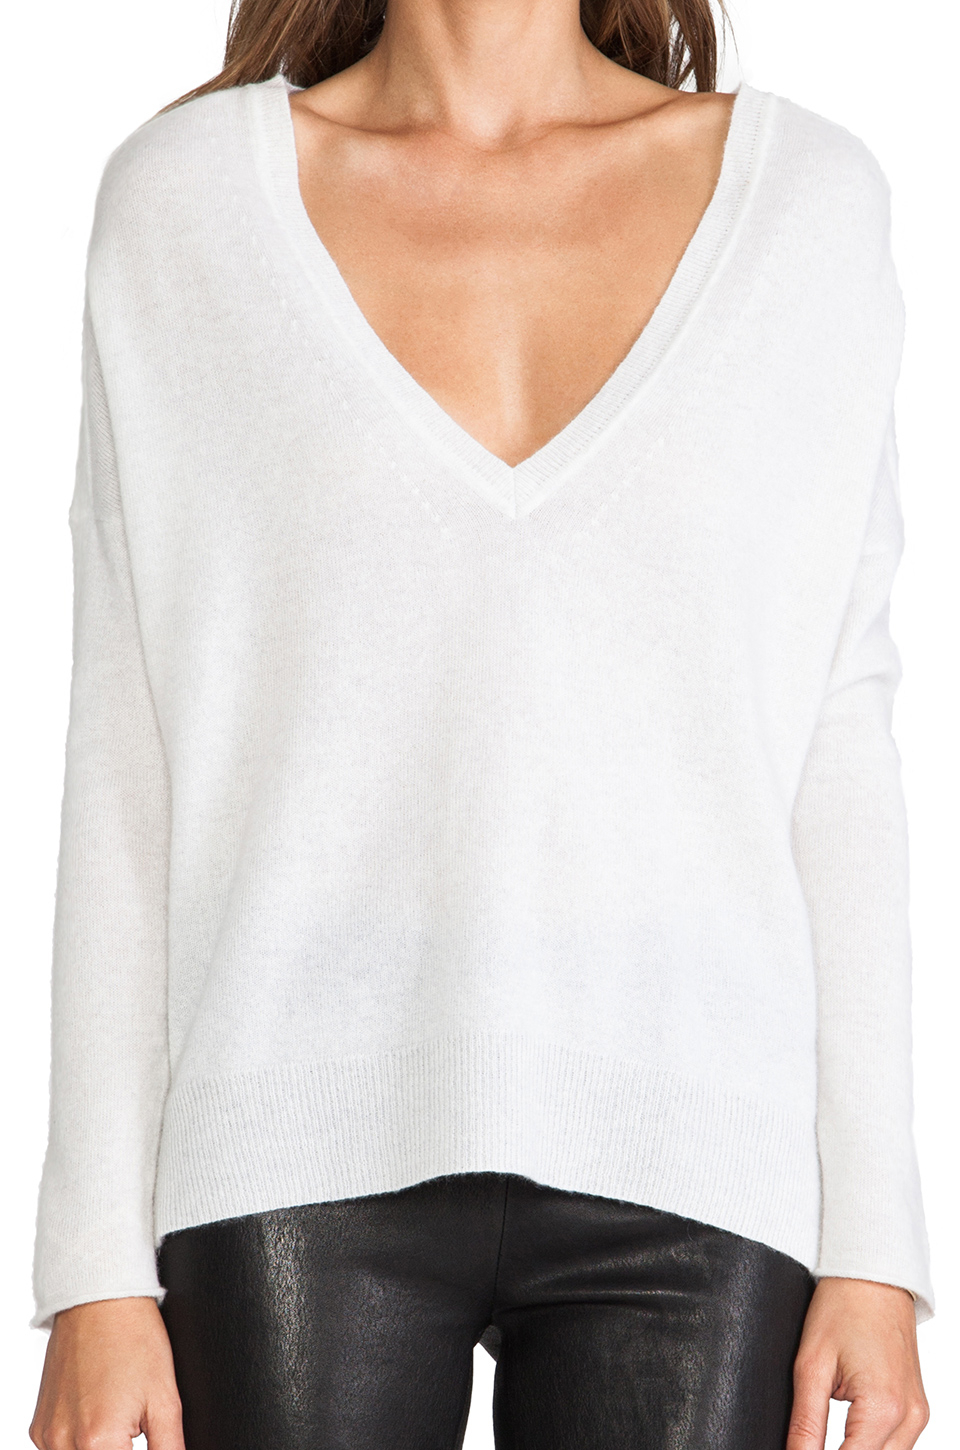 Duffy Vneck Cashmere Sweater in White | Lyst